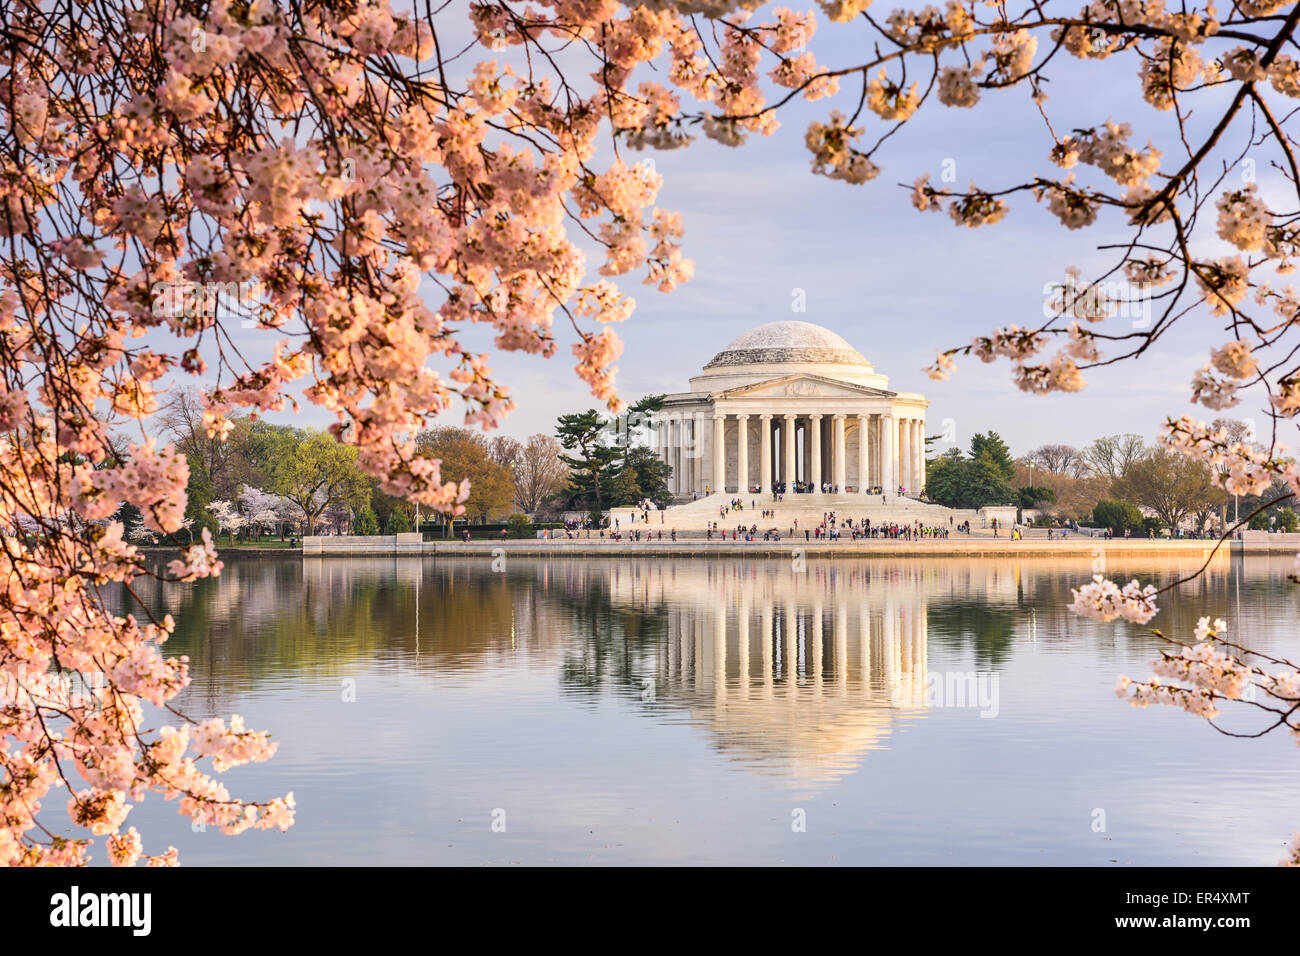 Washington, DC, en el Tidal Basin y el Jefferson Memorial durante la primavera. Imagen De Stock